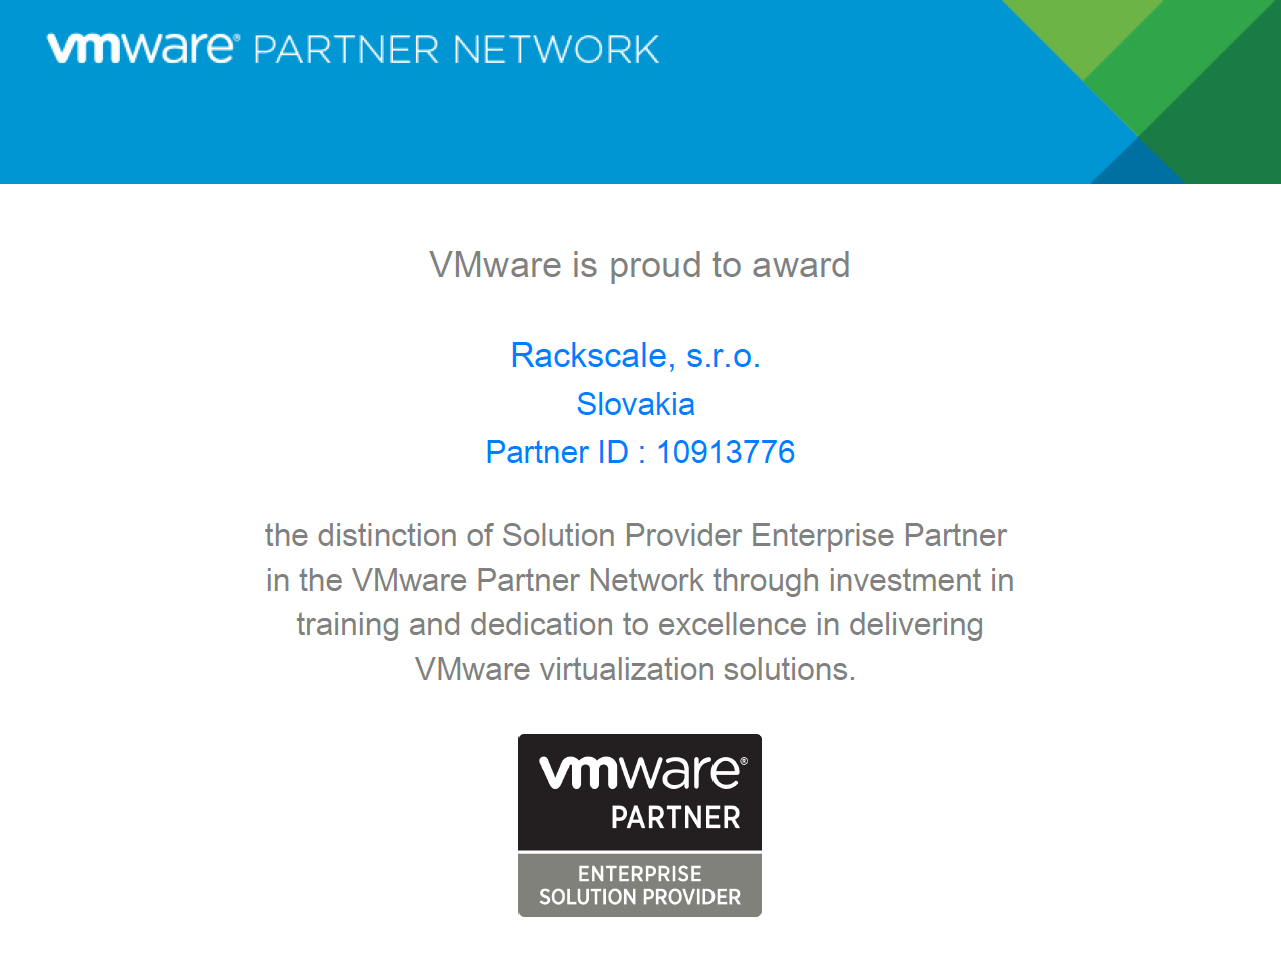 We are VMware Solution Provider Enterprise Partner